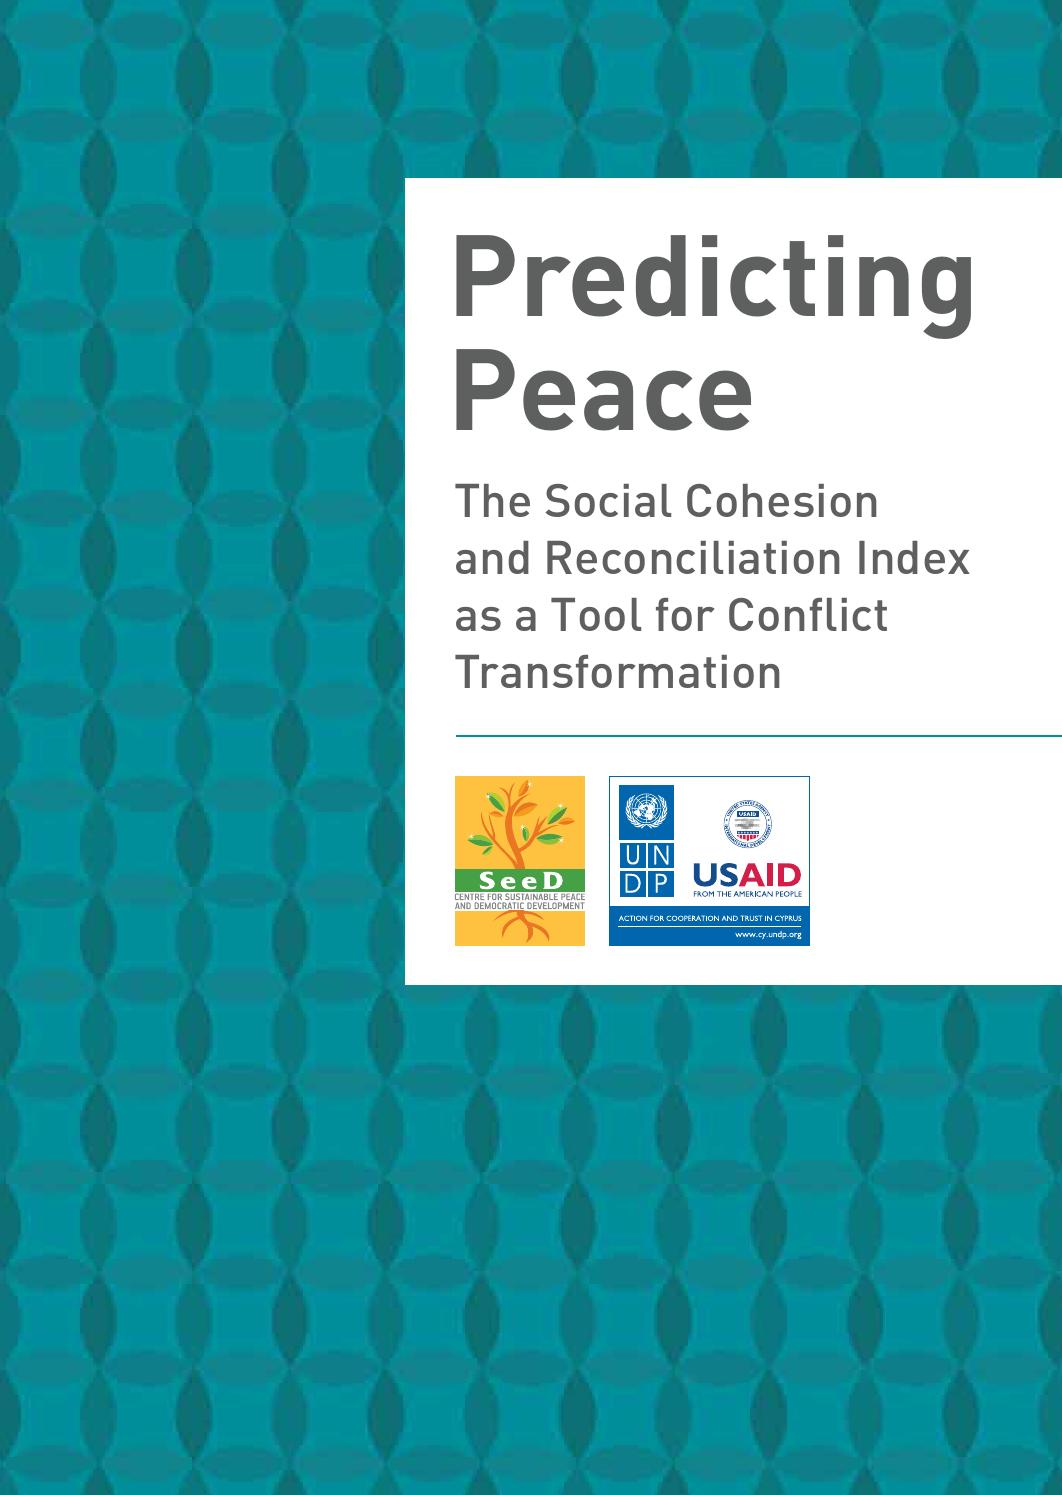 Predicting Peace: Social Cohesion and Reconciliation Index